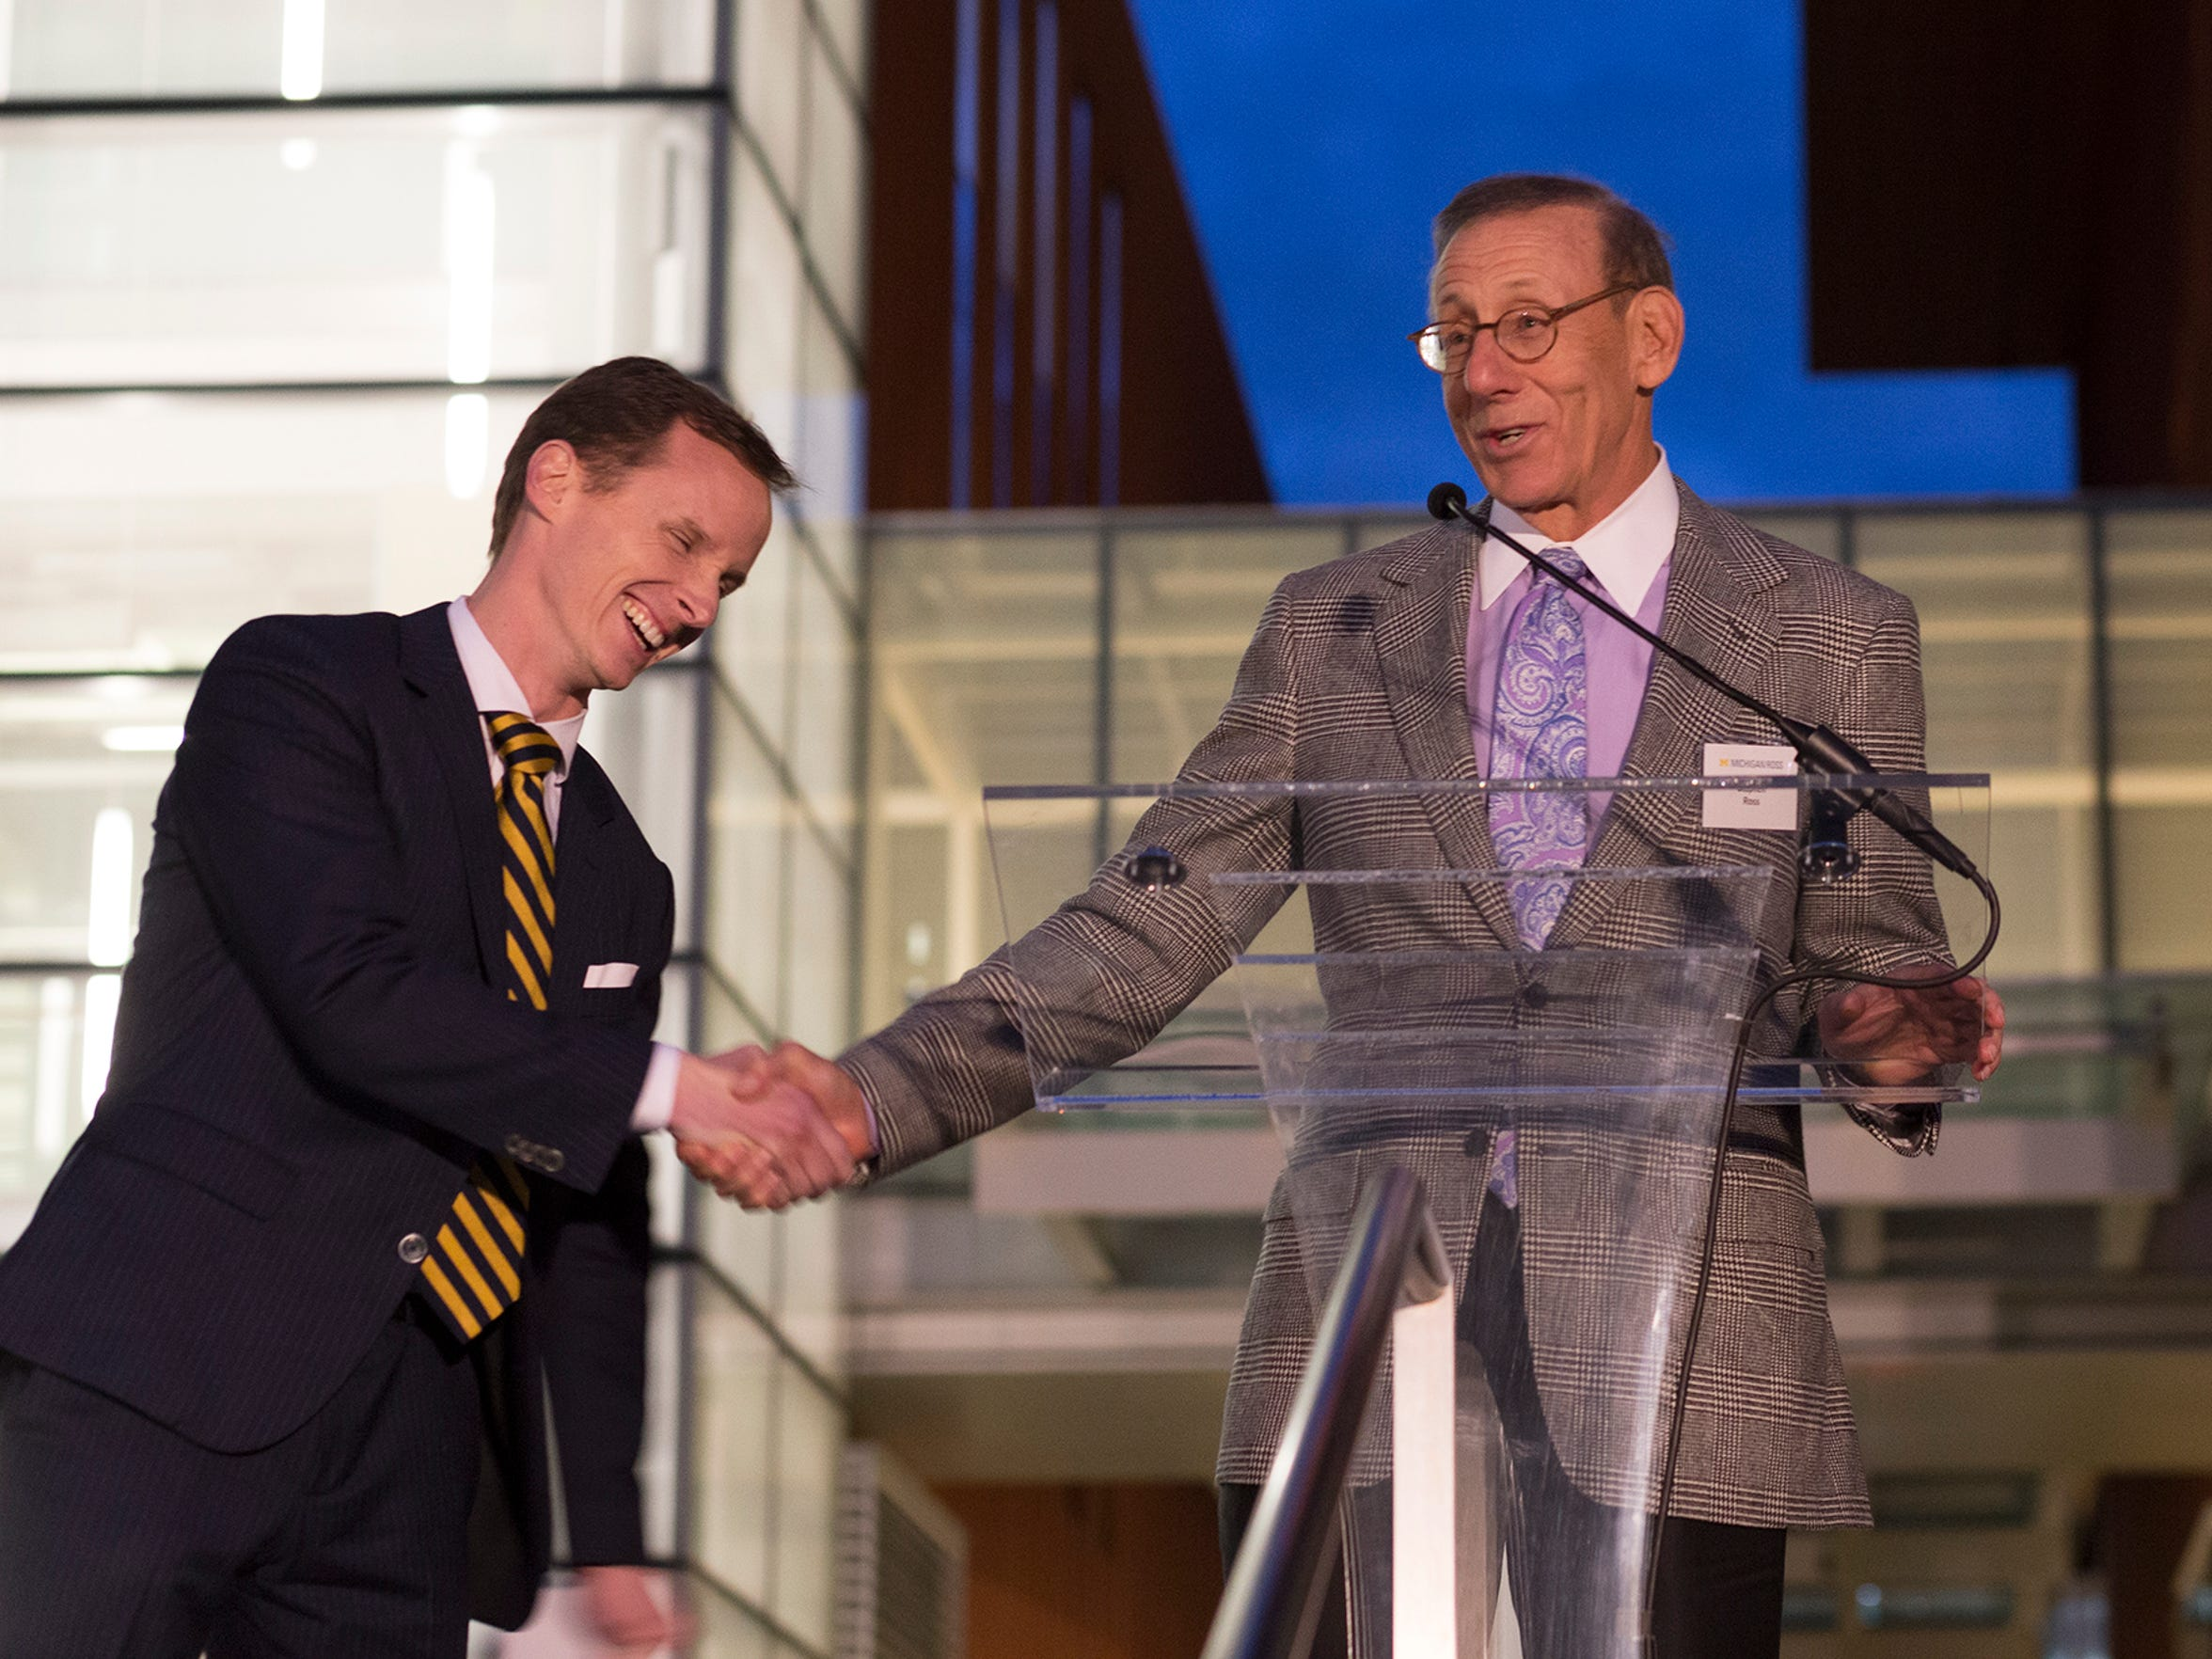 Stephen Ross, right, shakes the hand of Scott DeRue, the Edward J. Frey Dean of the Ross School of Business, during the ribbon cutting ceremony celebrating the Jeff T. Blau Hall on Oct. 21, 2016 at the University of Michigan in Ann Arbor.